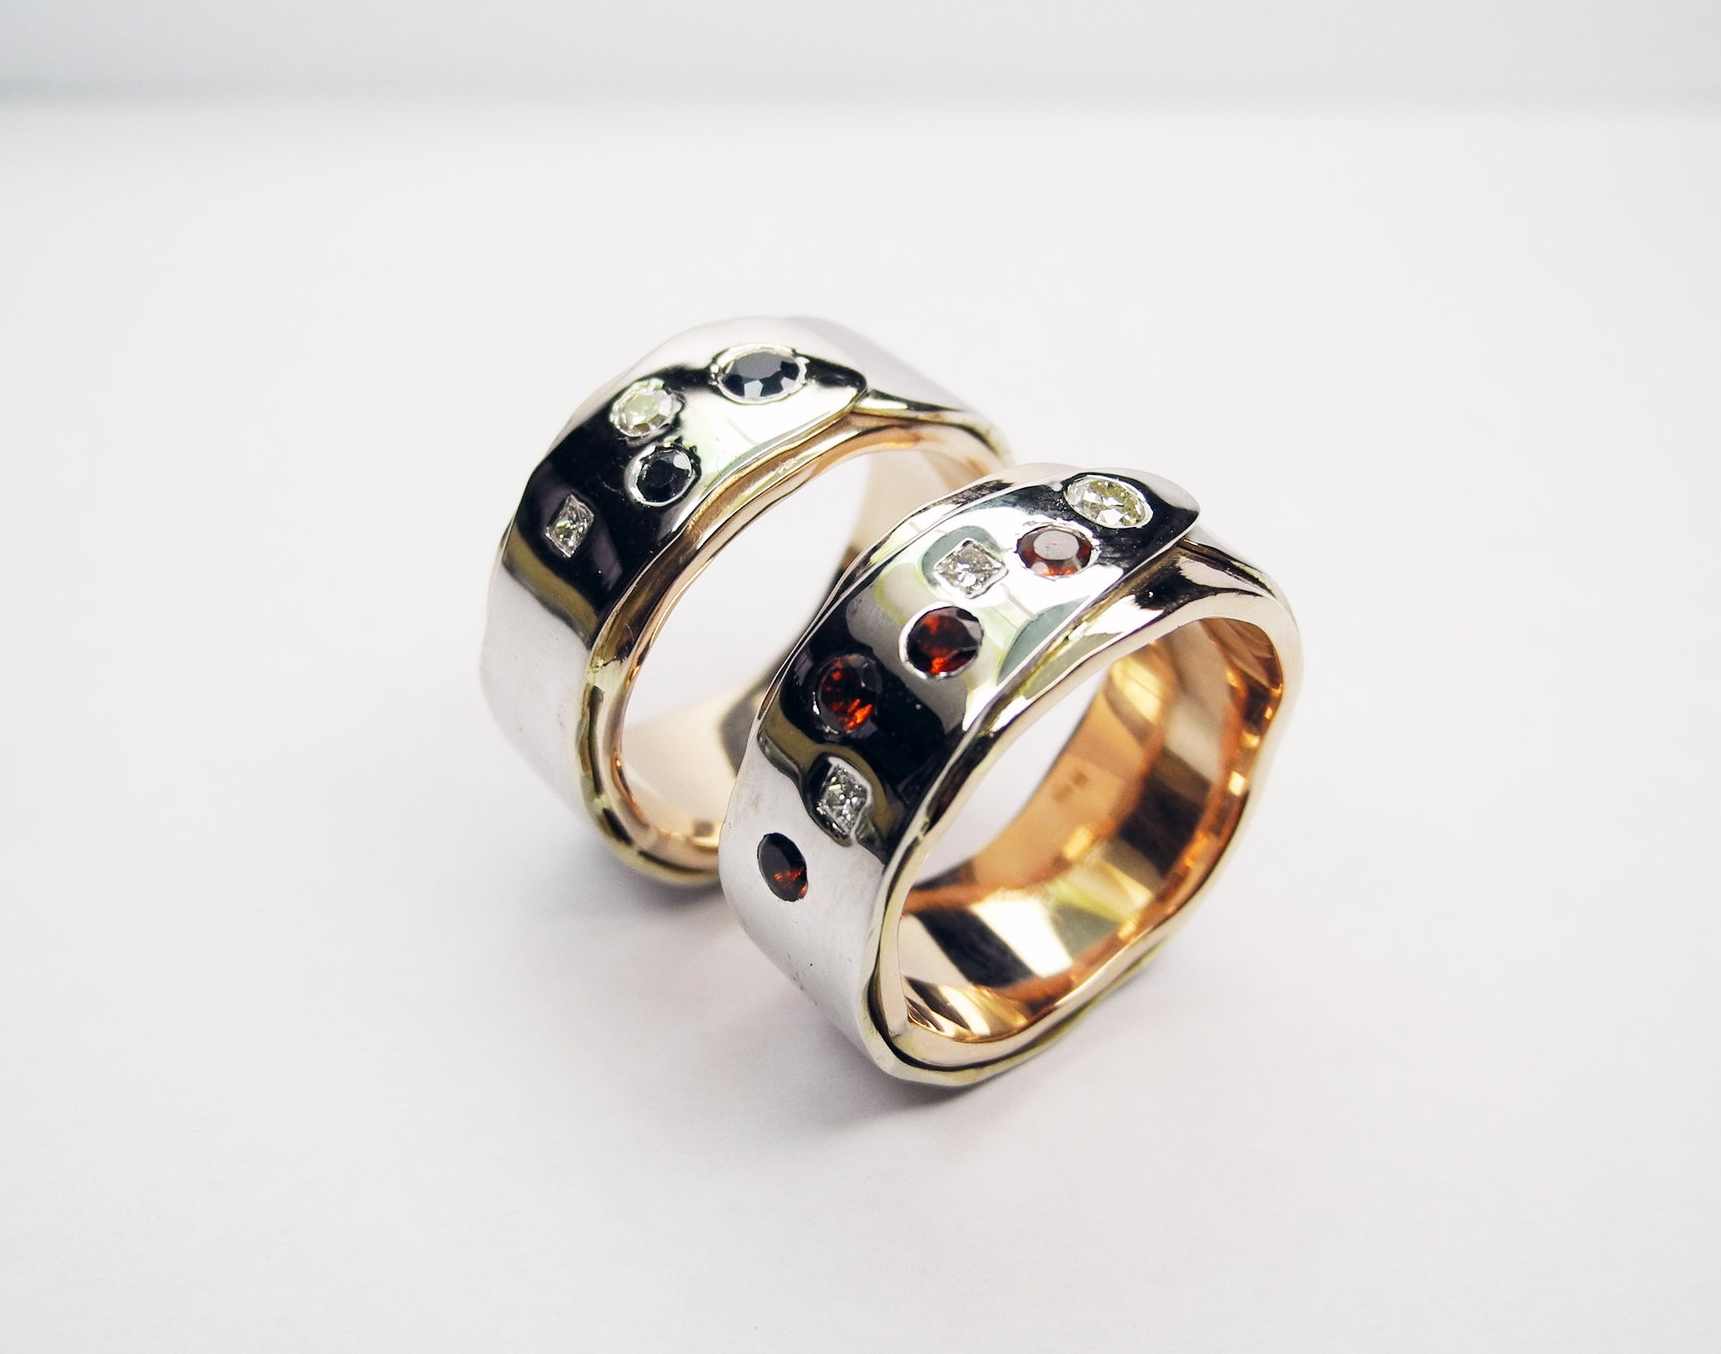 Wrapt wedding bands - white and rose gold with stones